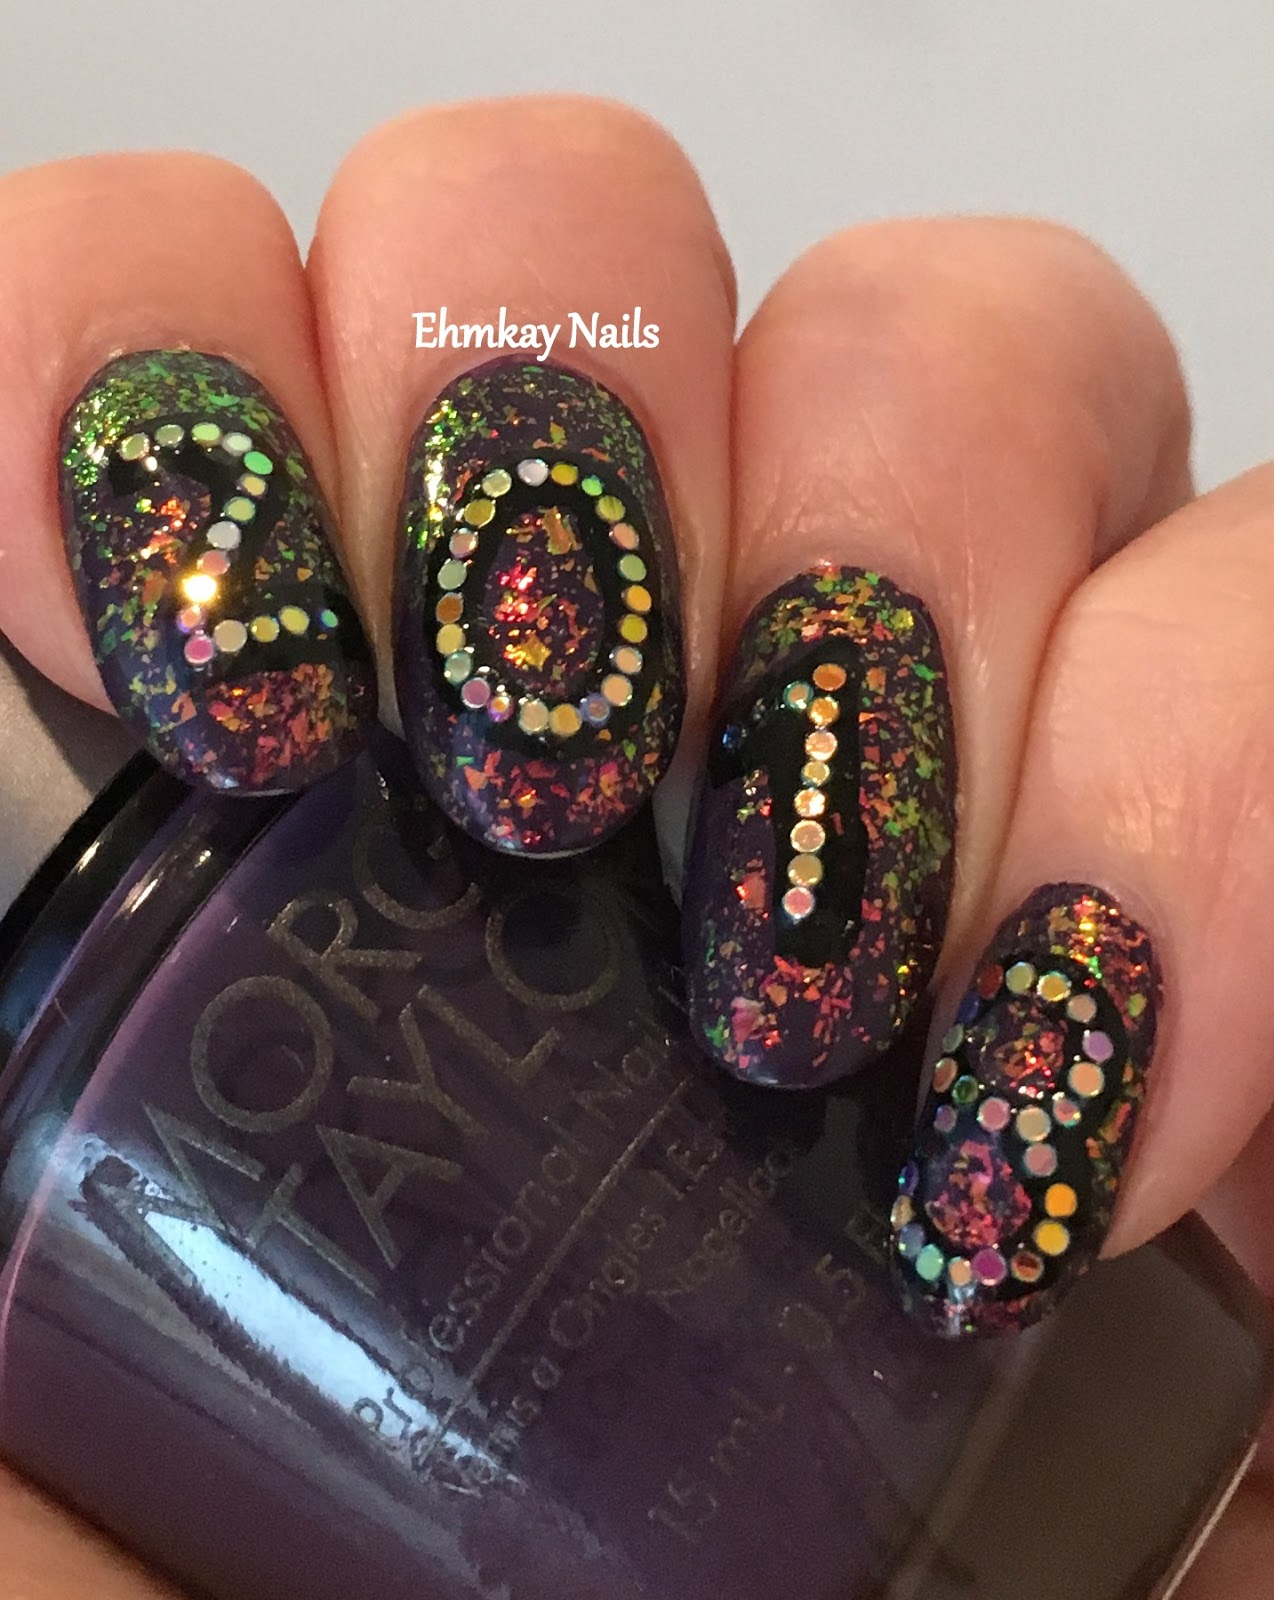 Ehmkay Nails: Welcome To 2018 Nail Art